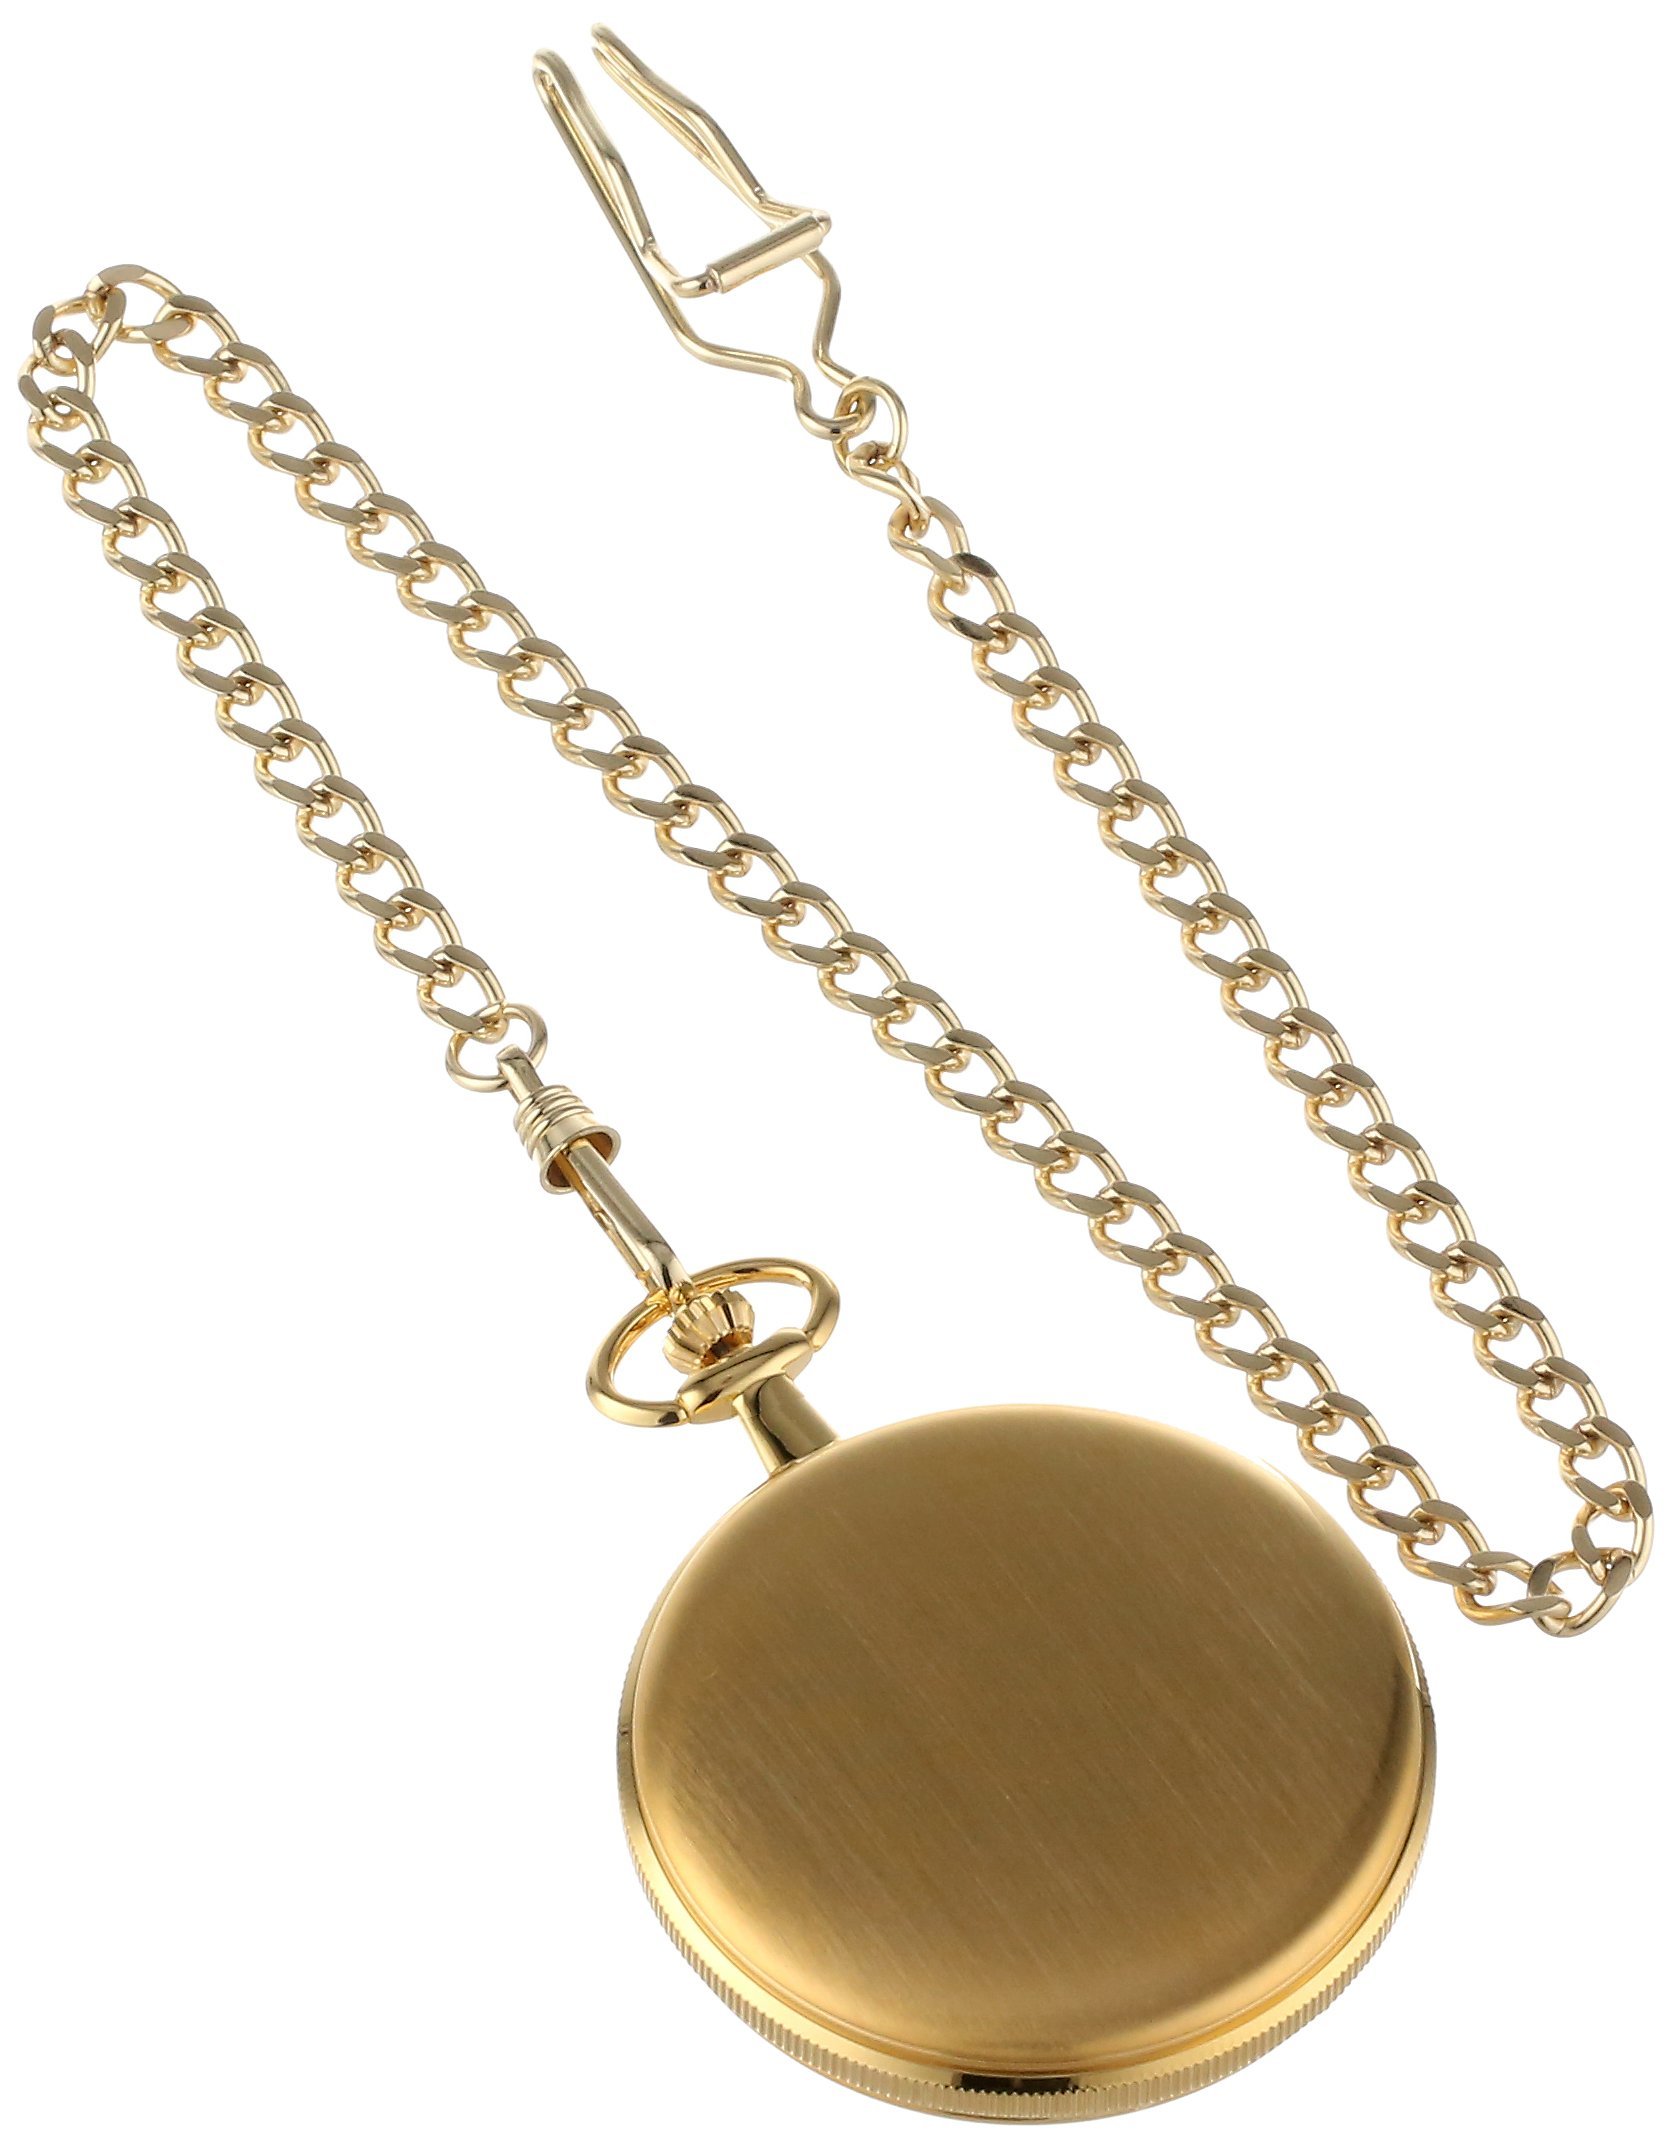 Charles-Hubert, Paris 3939 Classic Collection Gold Plated Brass Pocket Watch by Charles-Hubert, Paris (Image #2)